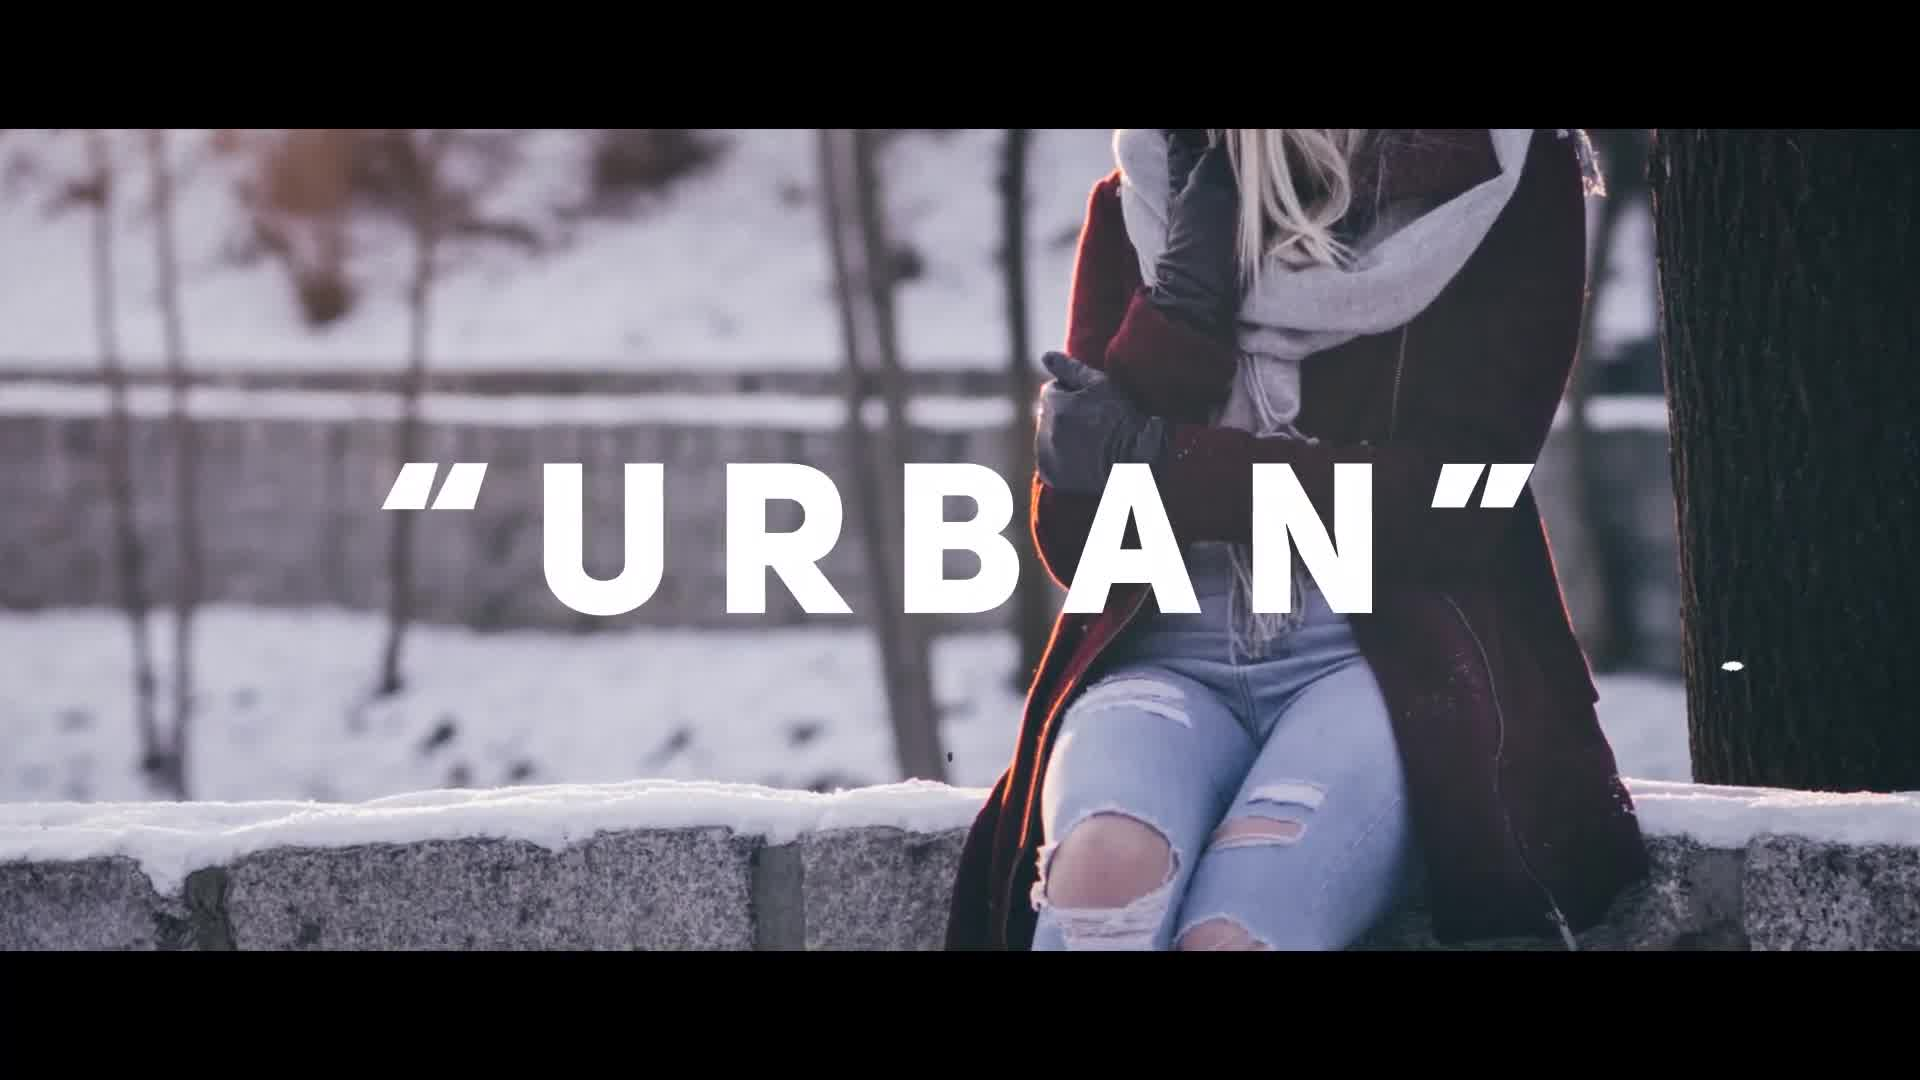 Urban Opener - Download Videohive 20206618